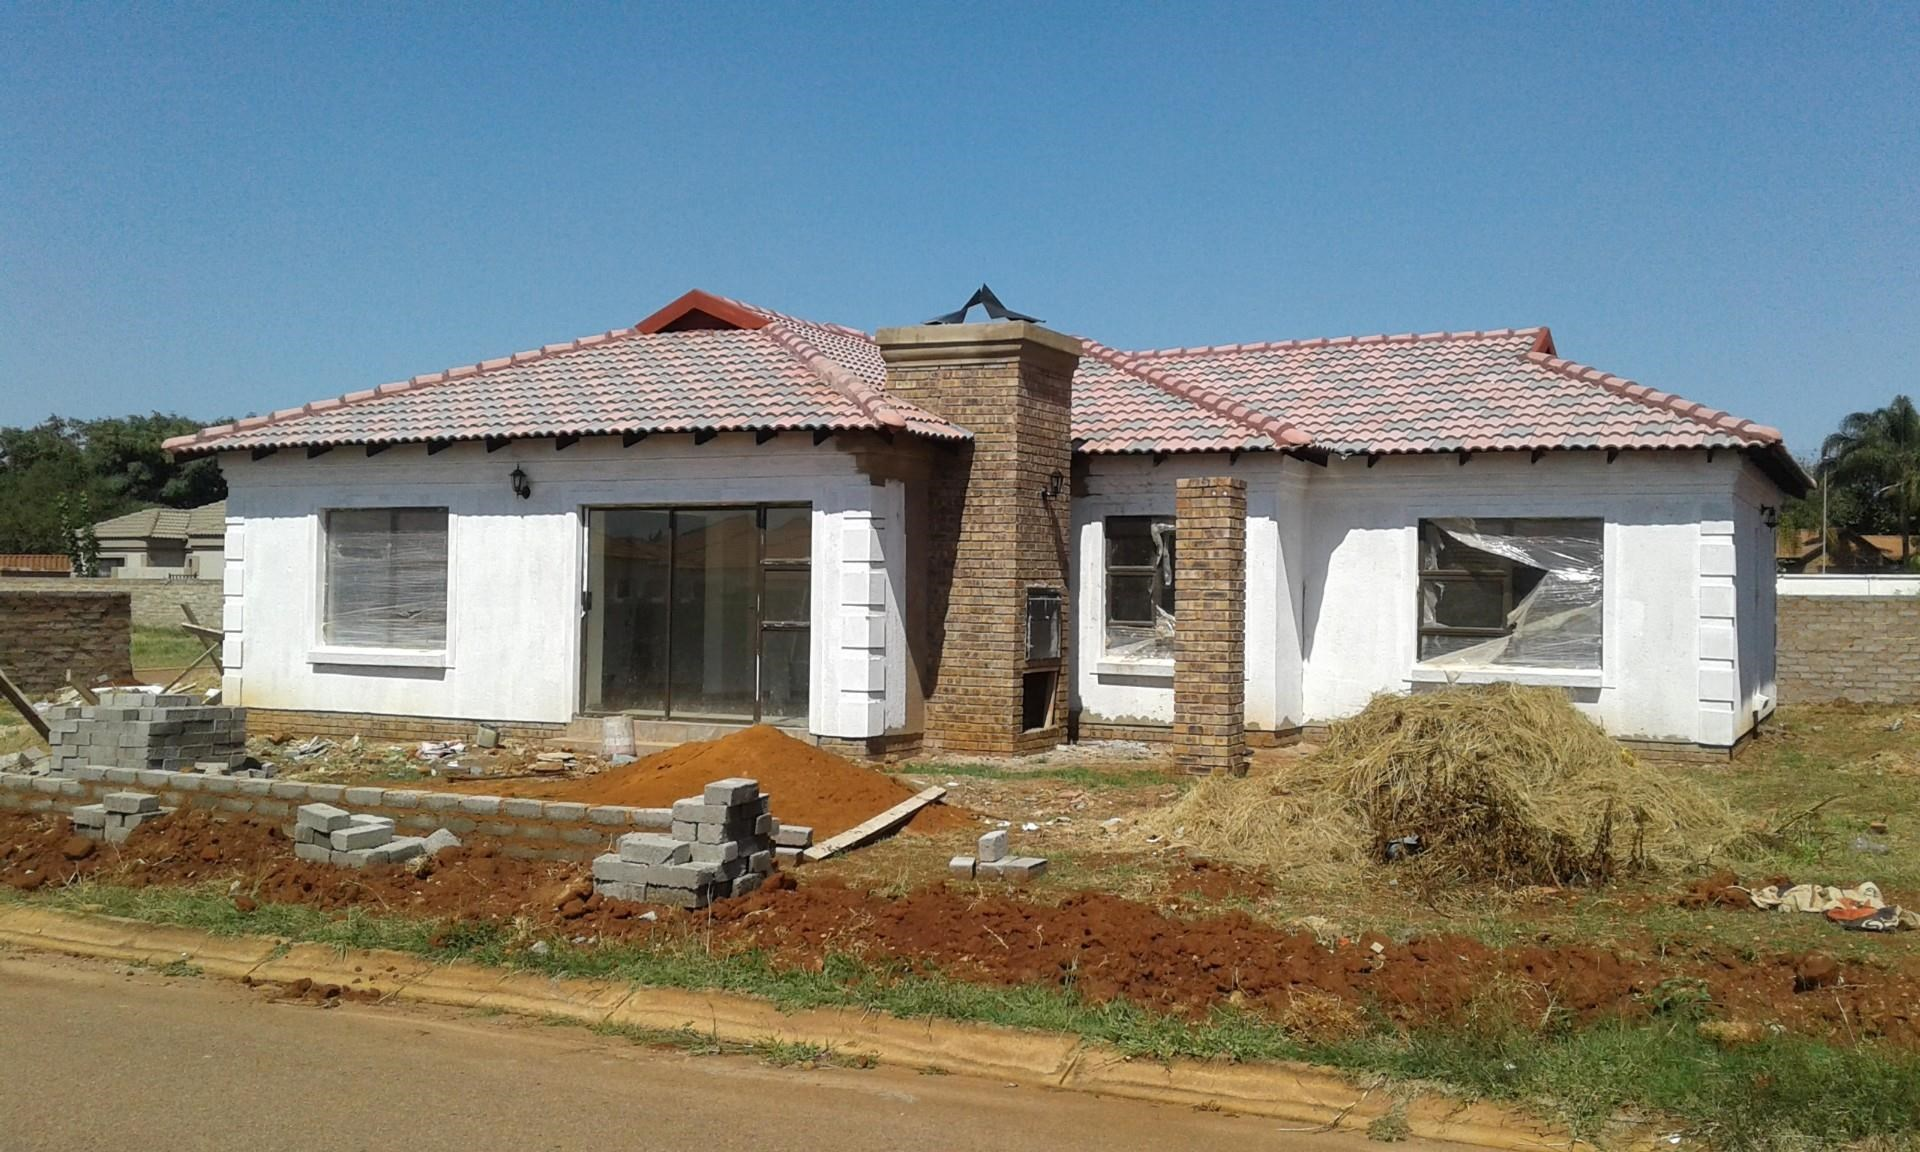 3 Bedroom House for Sale in Clarina